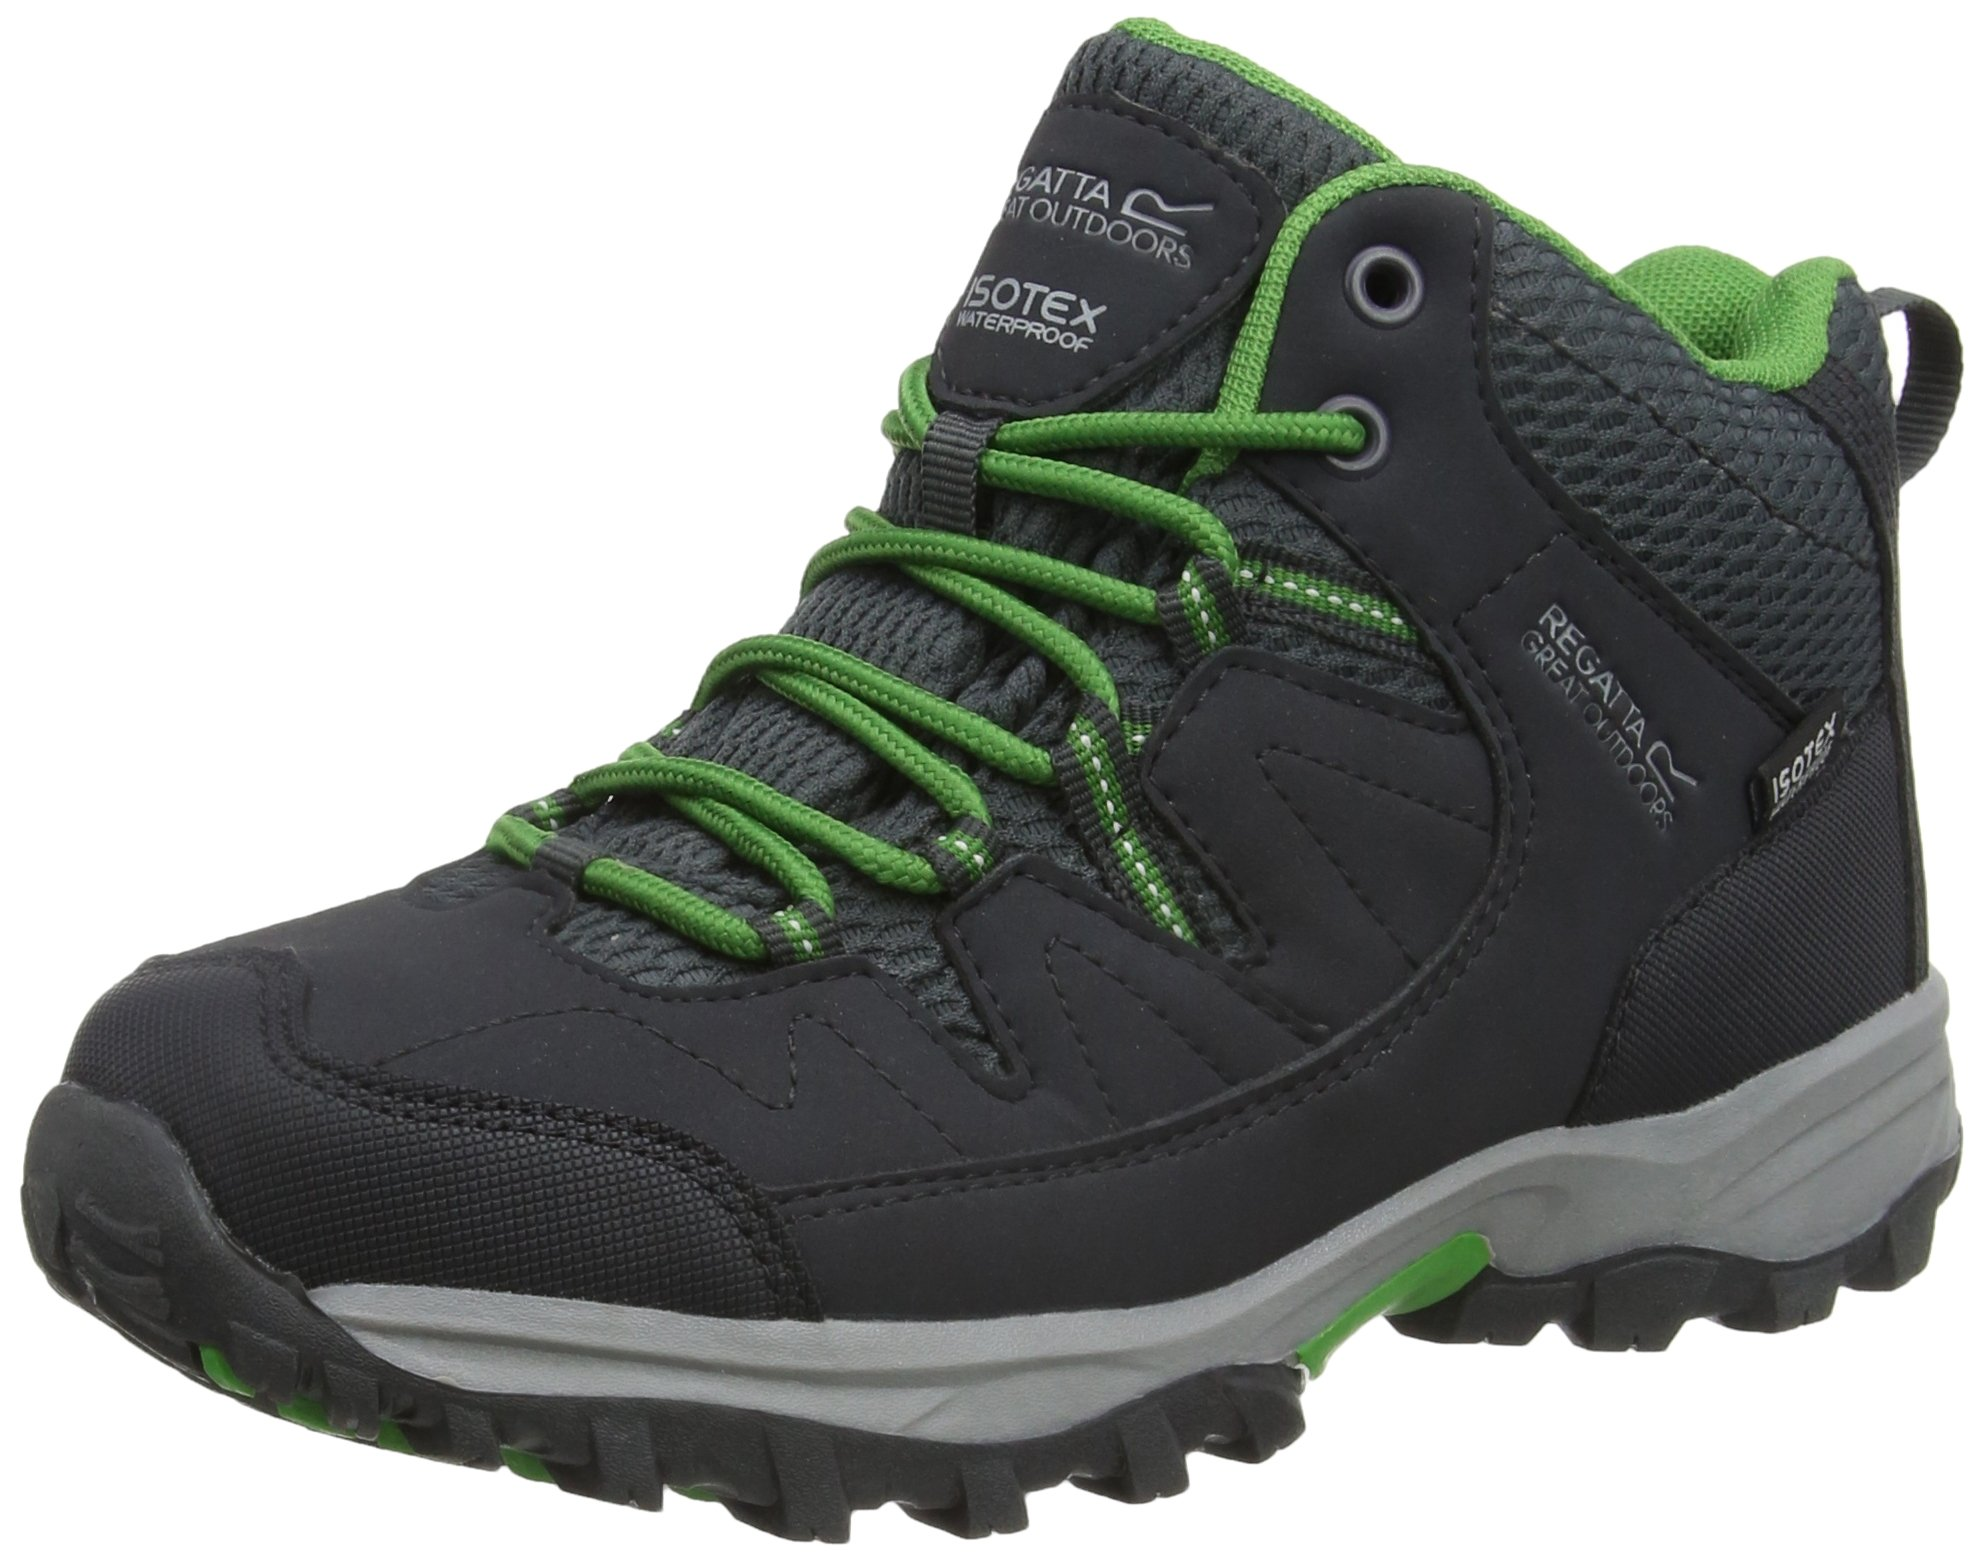 Regatta Great Outdoors Childrens/Kids Holcombe Mid Cut Waterproof Walking Boots (US 2) (Seal Gray/Green)